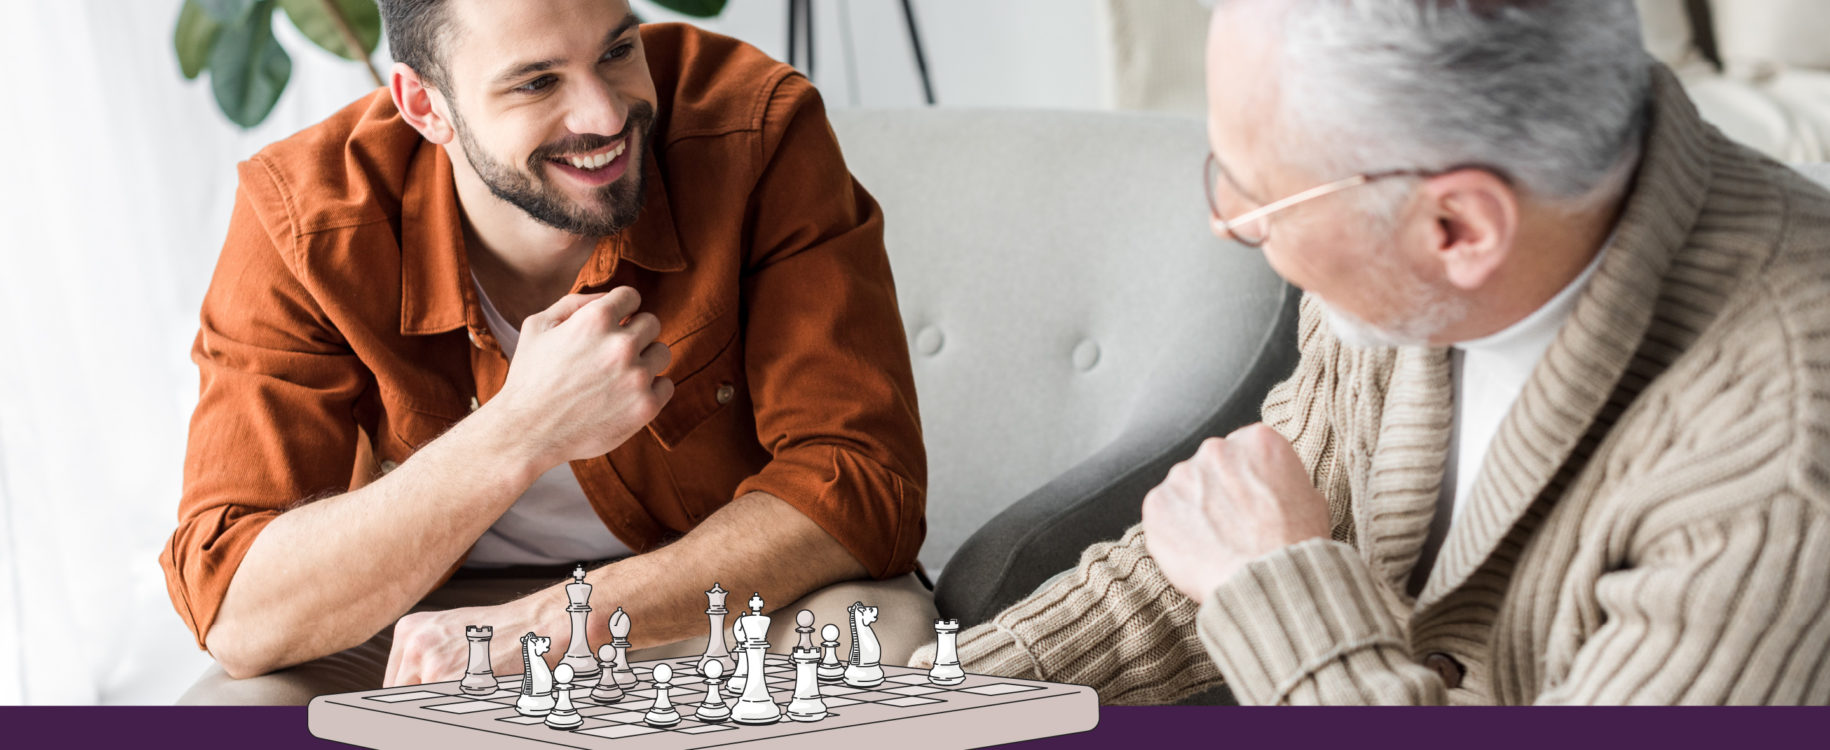 How to keep your cognitive skills sharp as you age